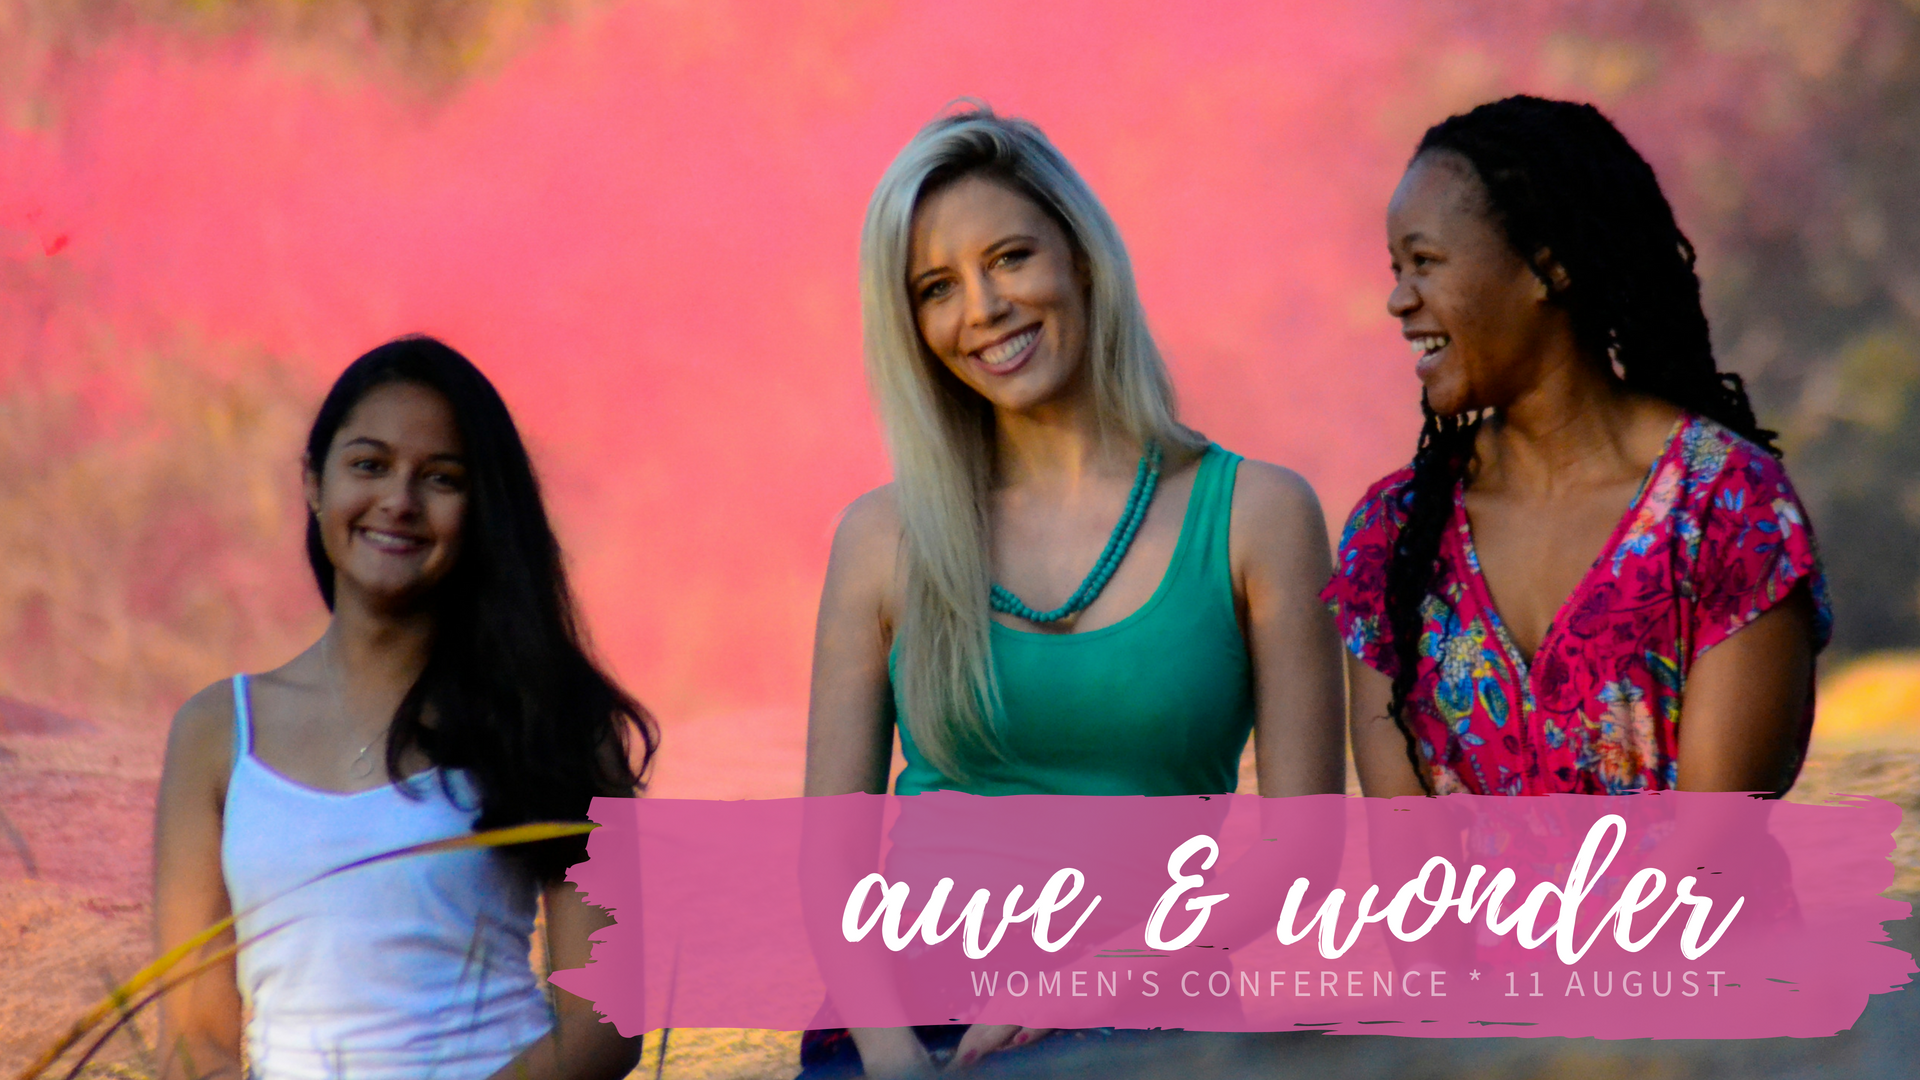 womens conference nelspruit